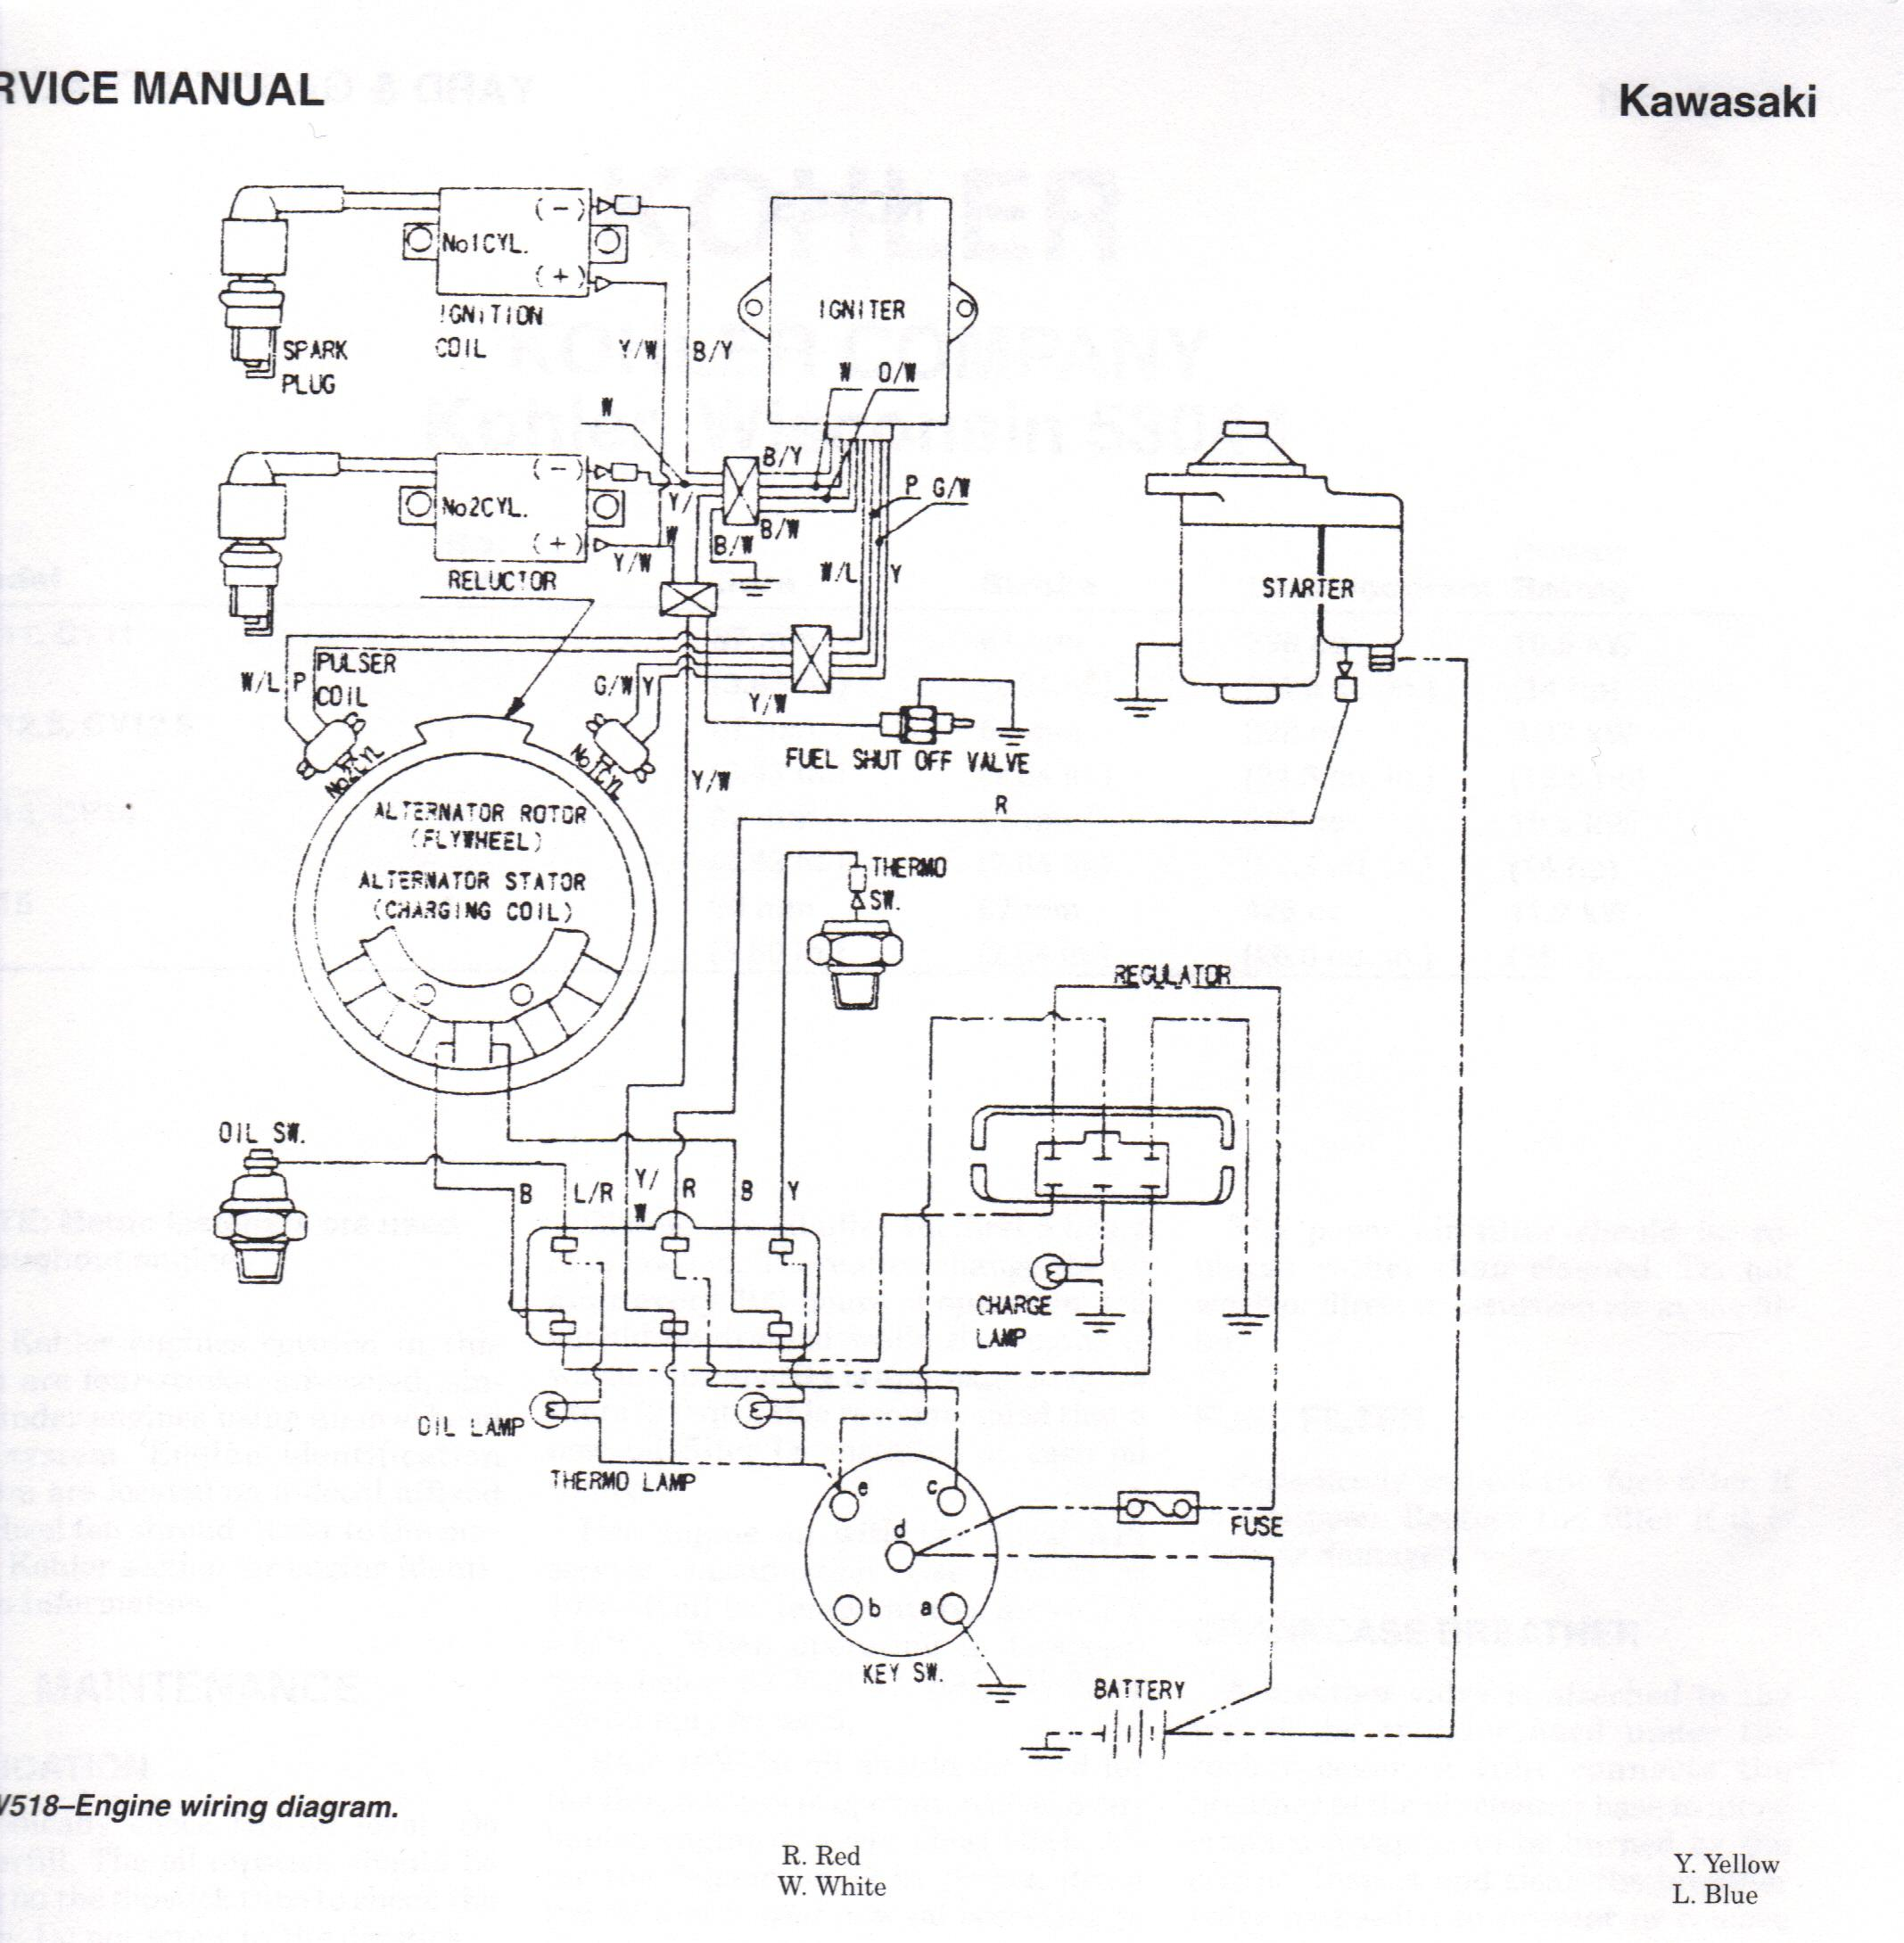 Wiring Diagram For John Deere L130 The Wiring Diagram – John Deere 210 Lawn Tractor Wiring Diagram